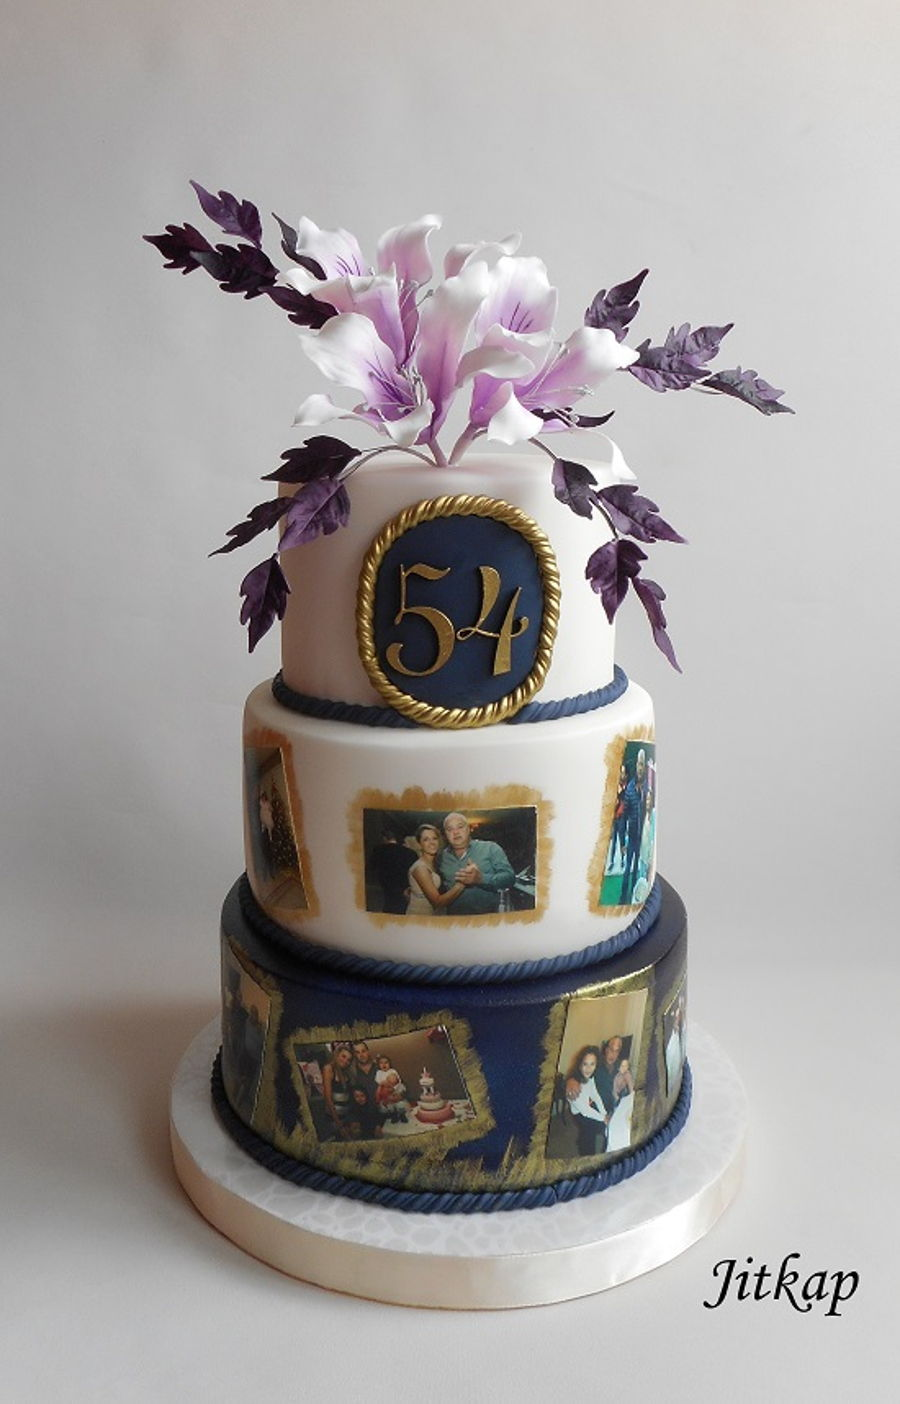 Birthday Cake With Bauhinia And Eddible Photos on Cake Central